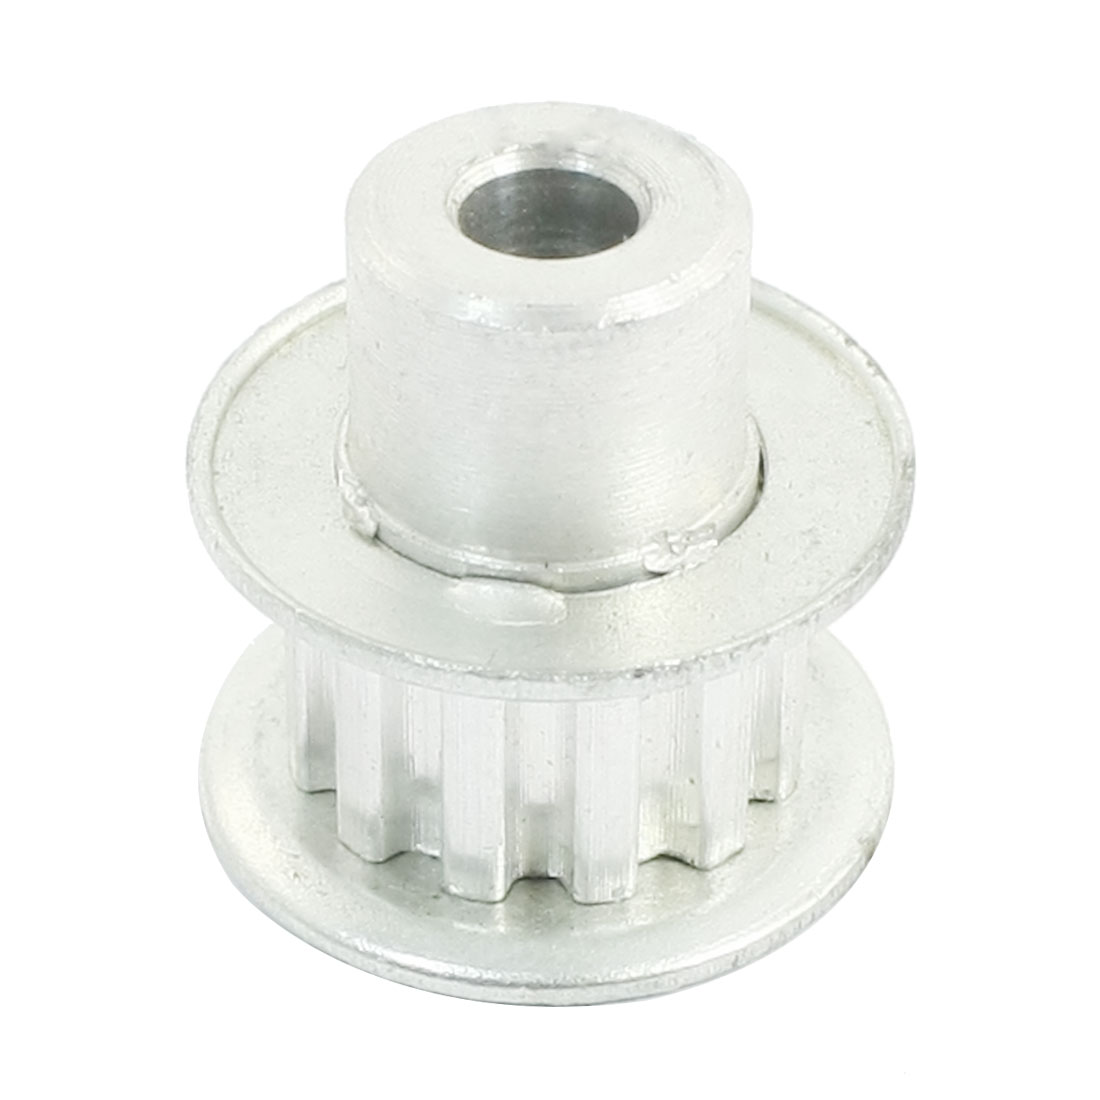 Aluminum Alloy XL Type 14 Teeth 6mm Bore Dia Double Flanged Motor Drive Synchronous Timing Pulley